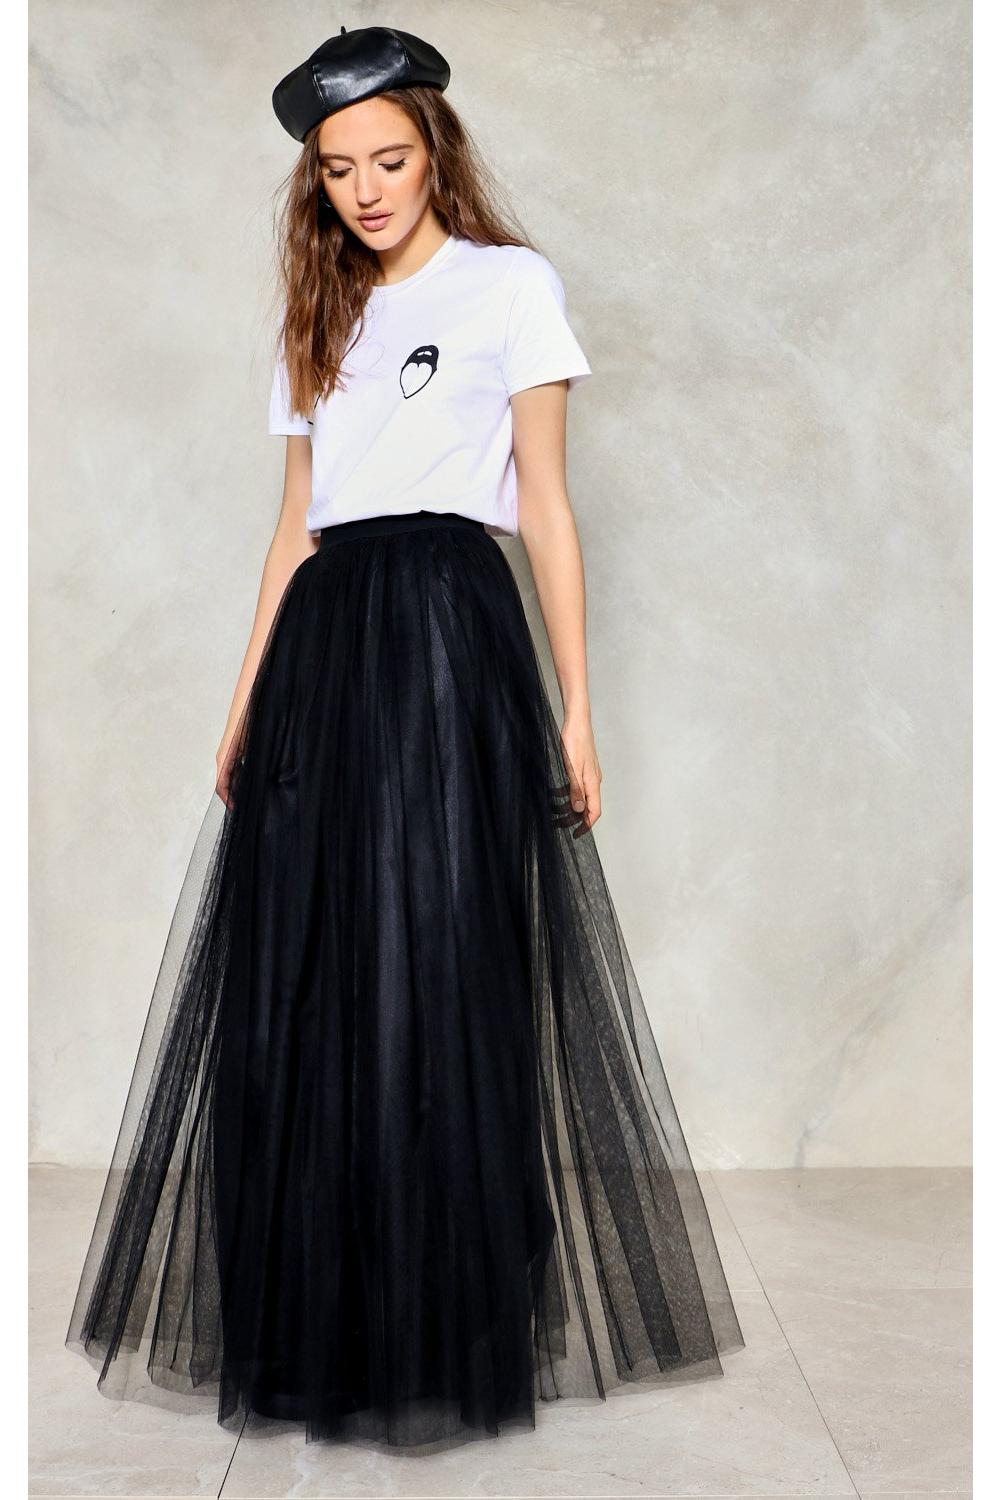 cc25bd8e22ab Hover to zoom · Womens Black Tulle For You Maxi Skirt